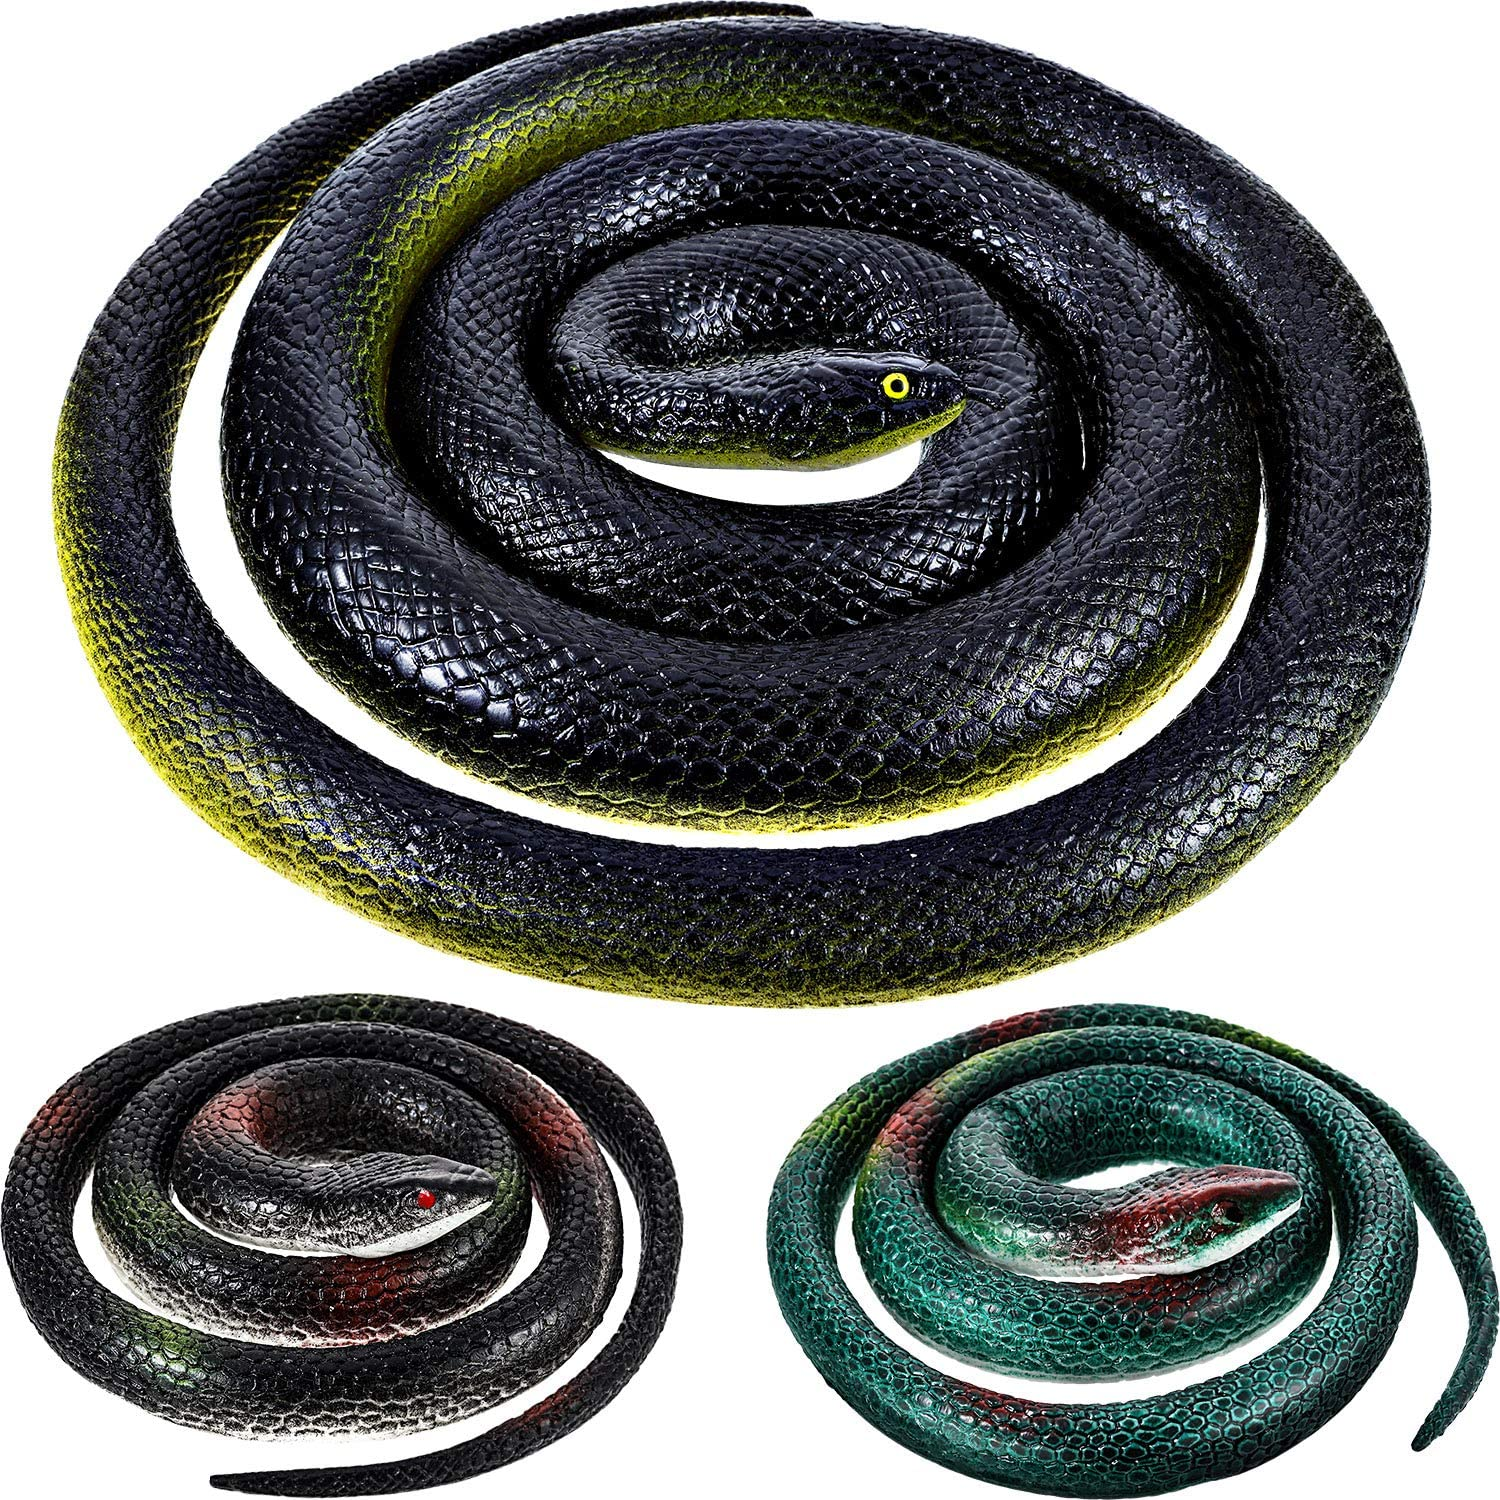 3 Pieces Jumbo Large Rubber Snakes in 2 Sizes 53 Inches and 29 Inches, Fake Snake Black Mamba Snake Toys for Garden Props to Scare Birds, Pranks, Halloween Decoration